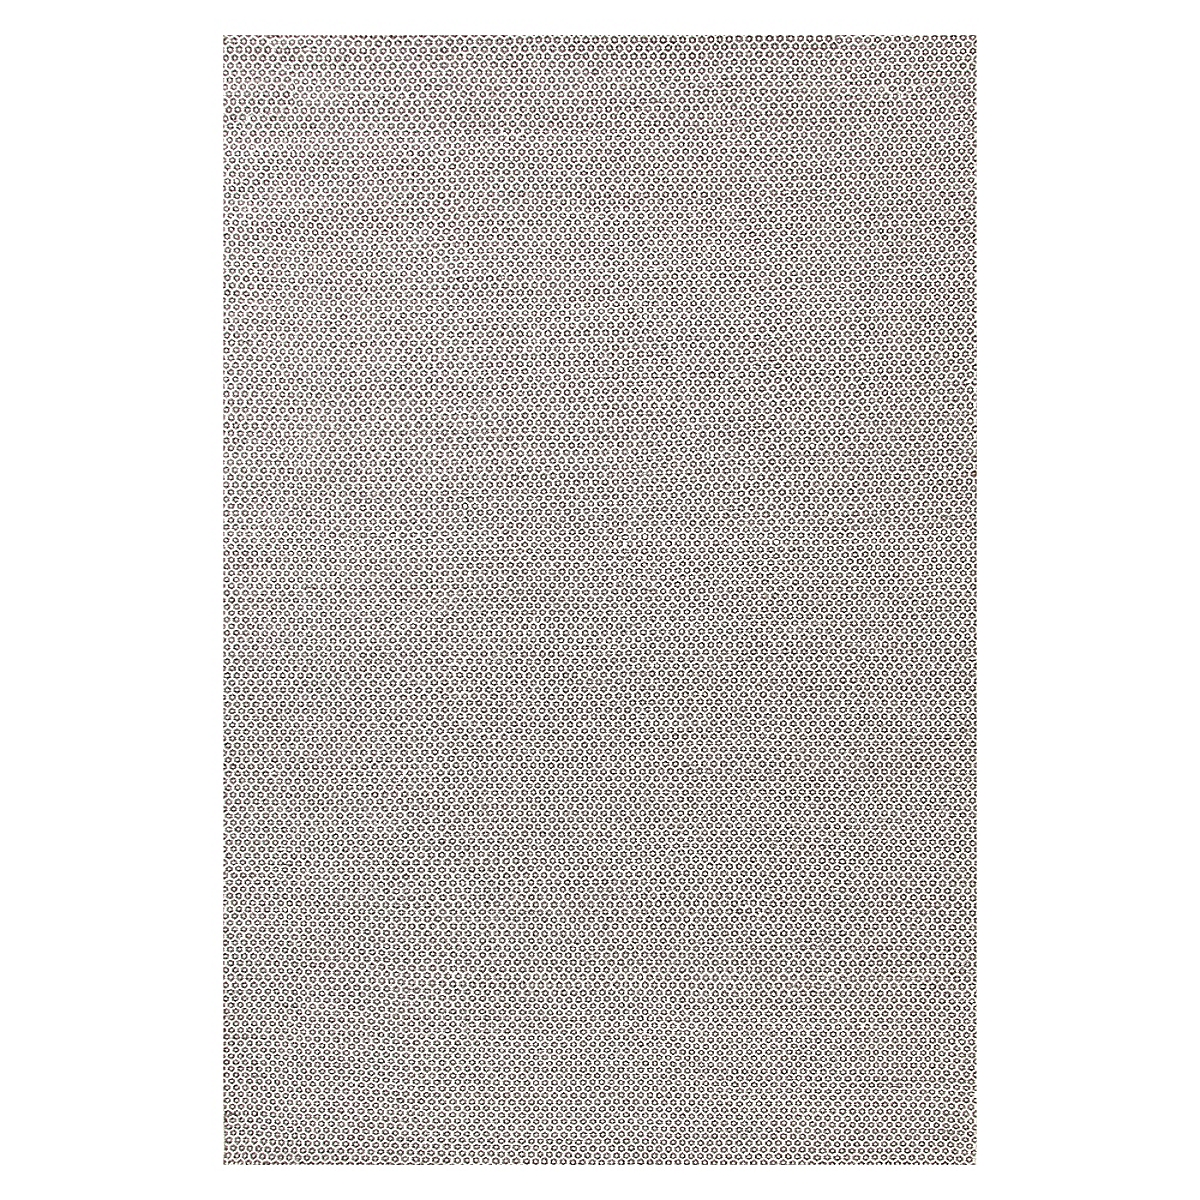 Honeycomb Ivory Grey Wool Woven Rug